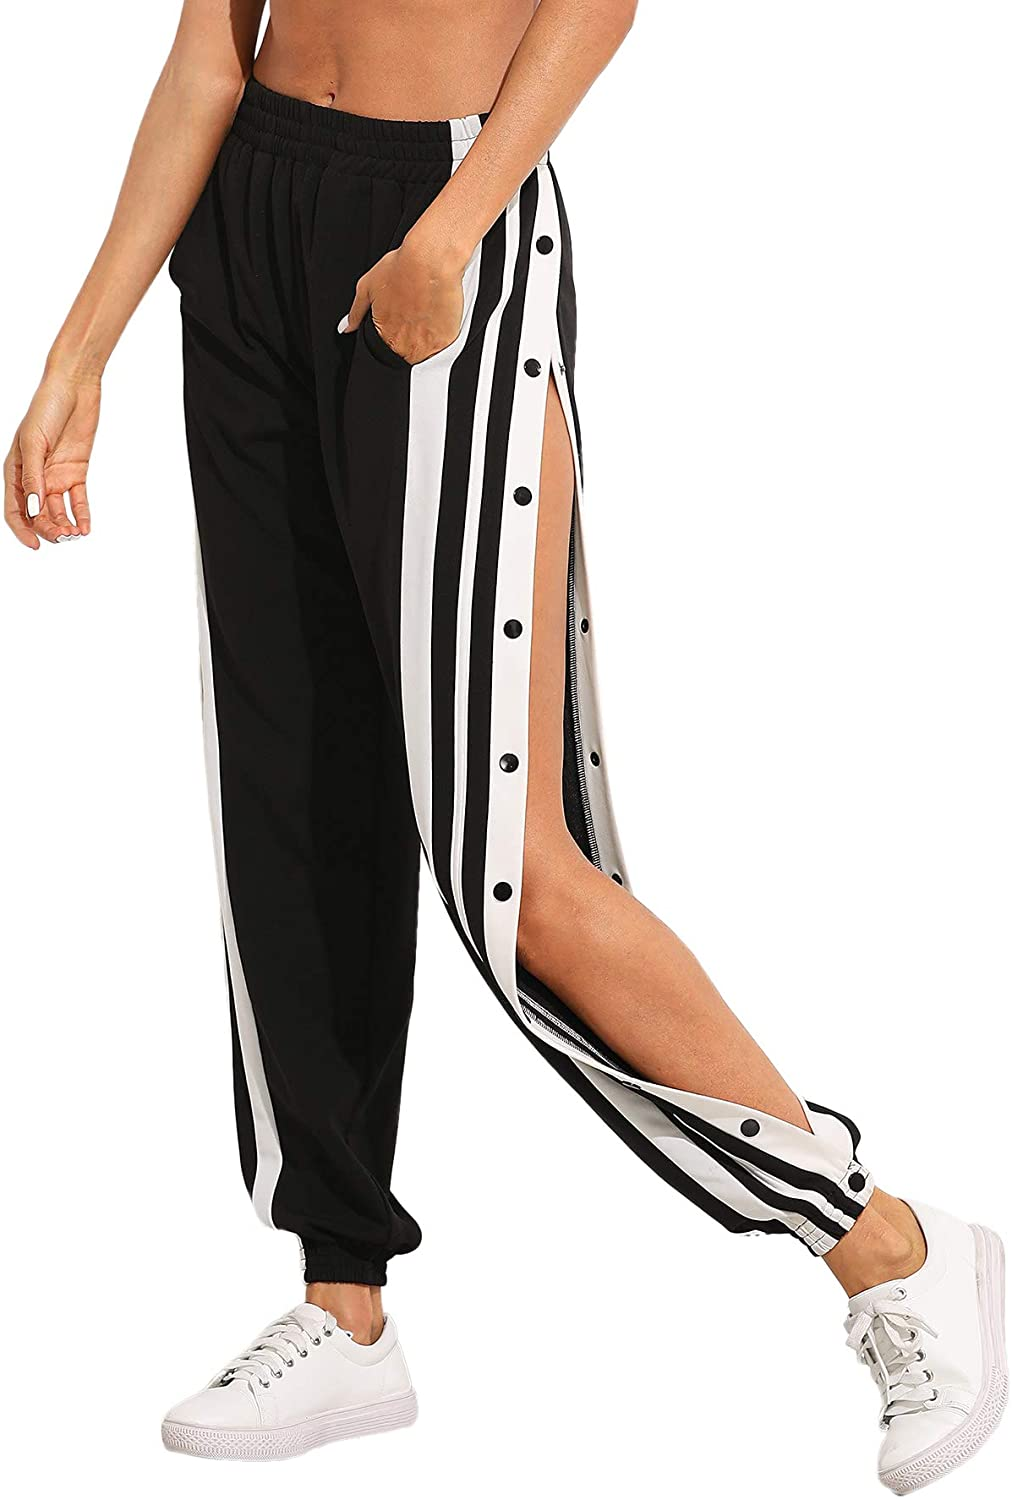 SOLY HUX Women's Sporty High Split Side Striped Joggers Snap Button Track Pants